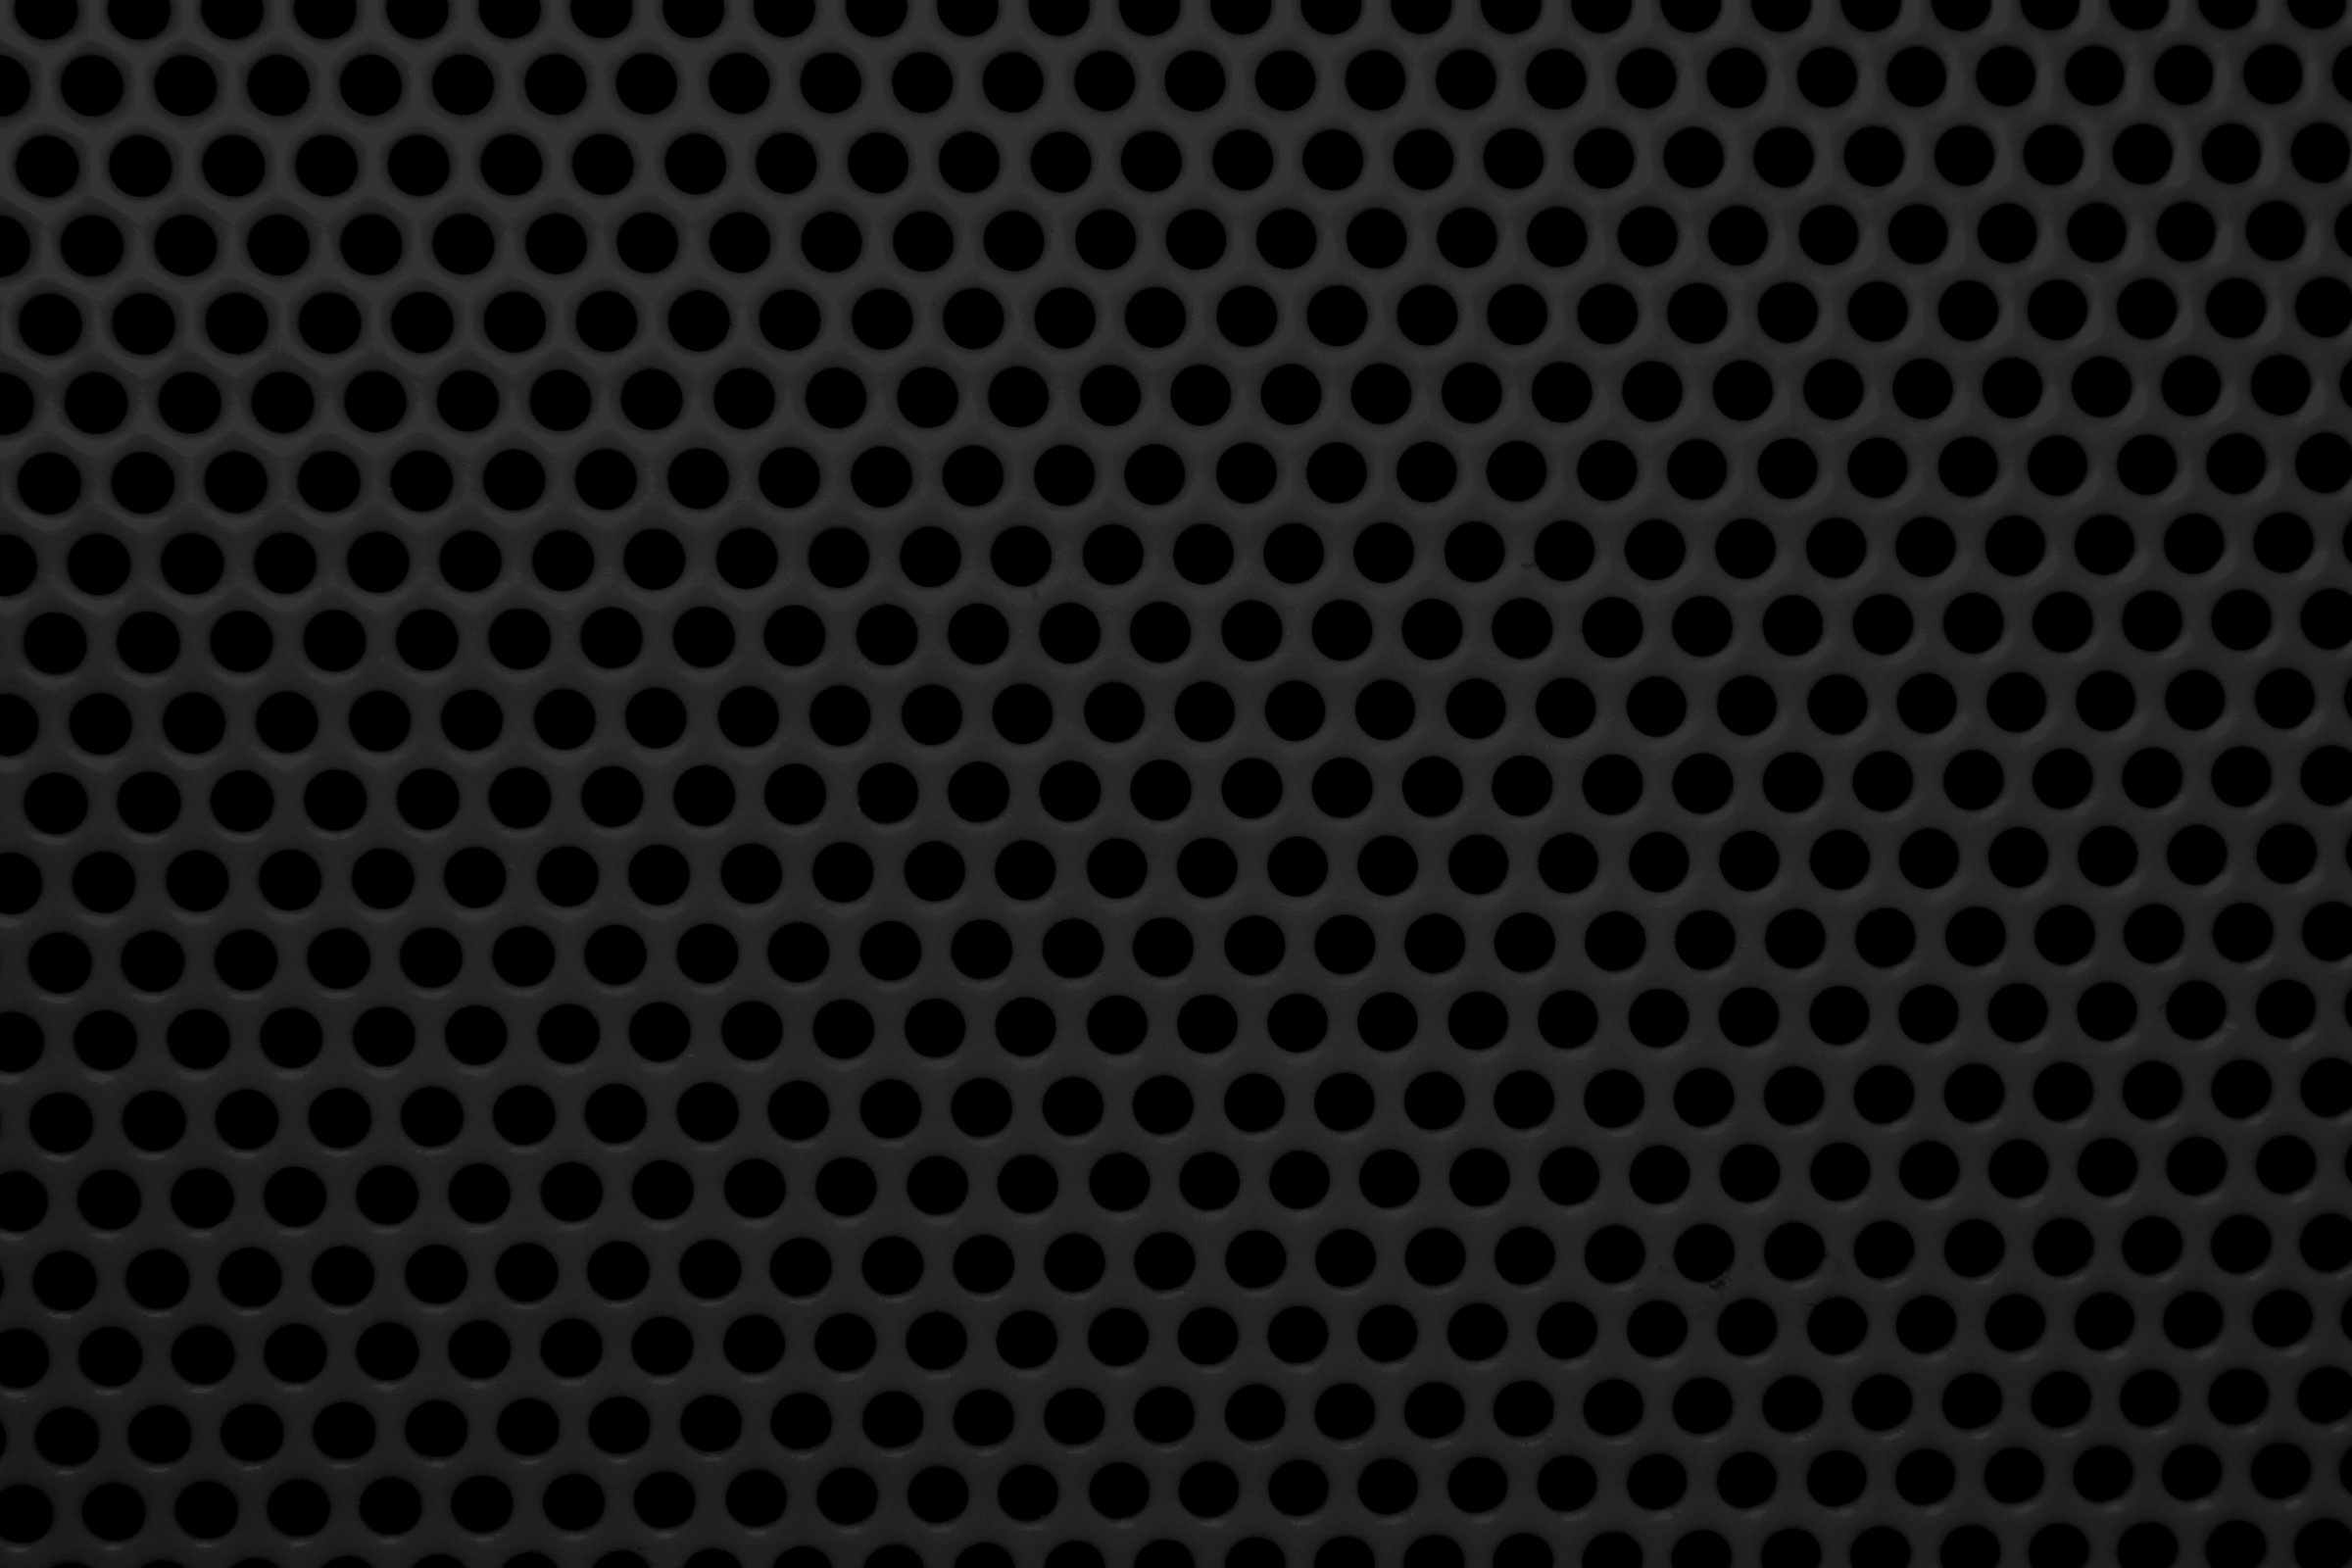 Black Mesh With Round Holes Texture Picture Free